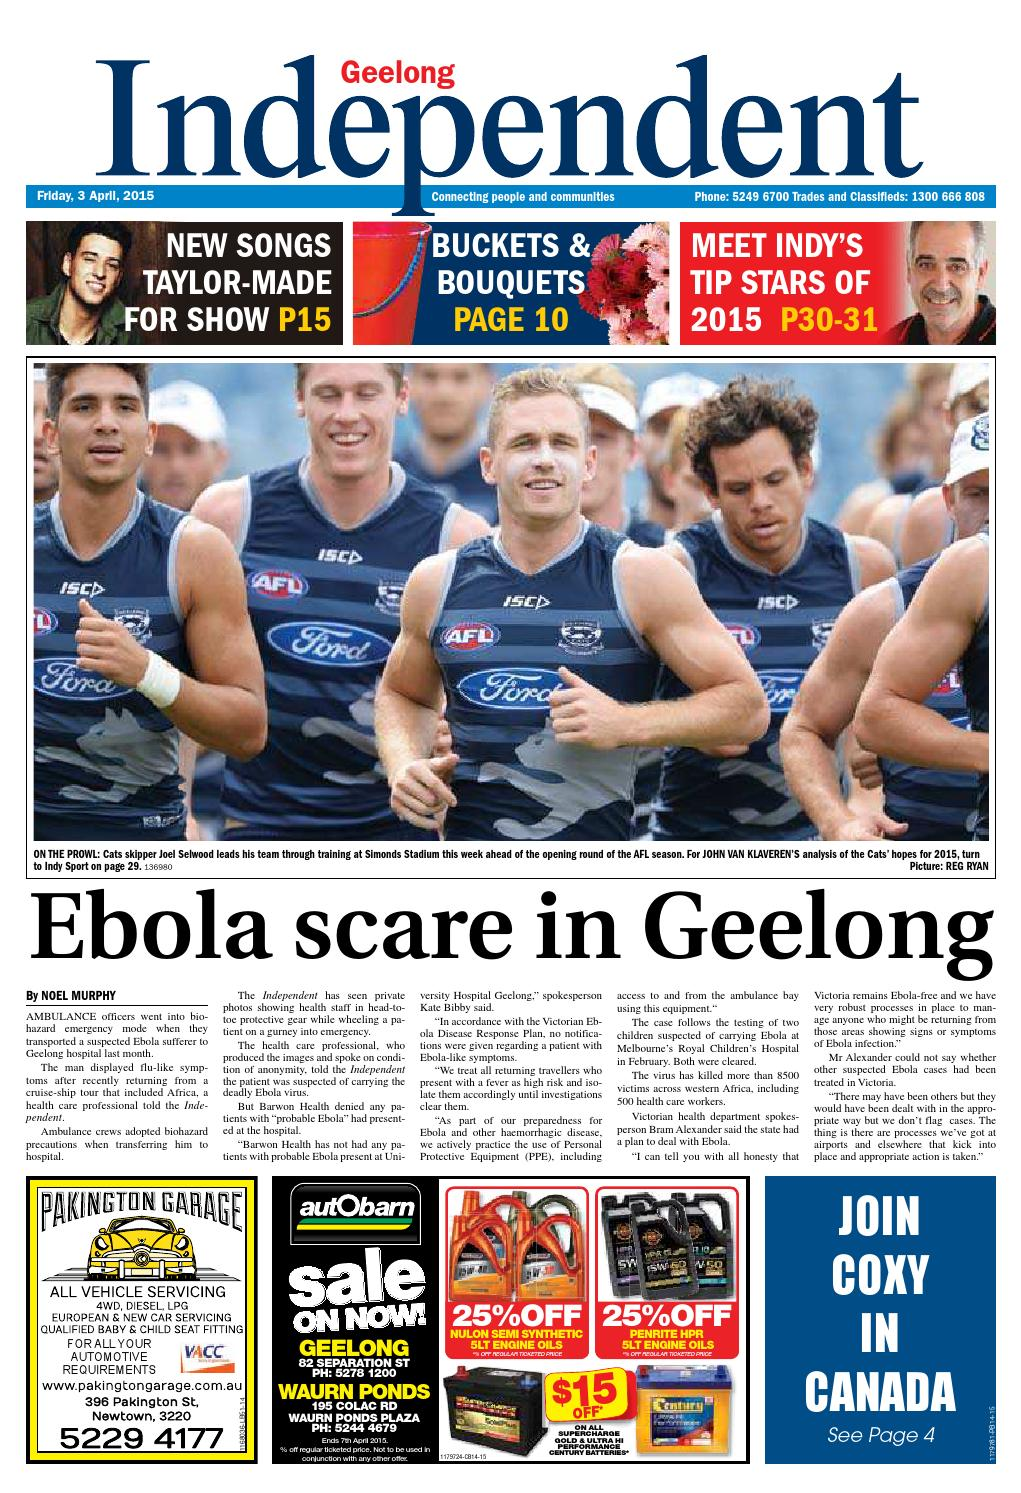 Geelong Independent - 03rd April 2015 by Star News Group - issuu